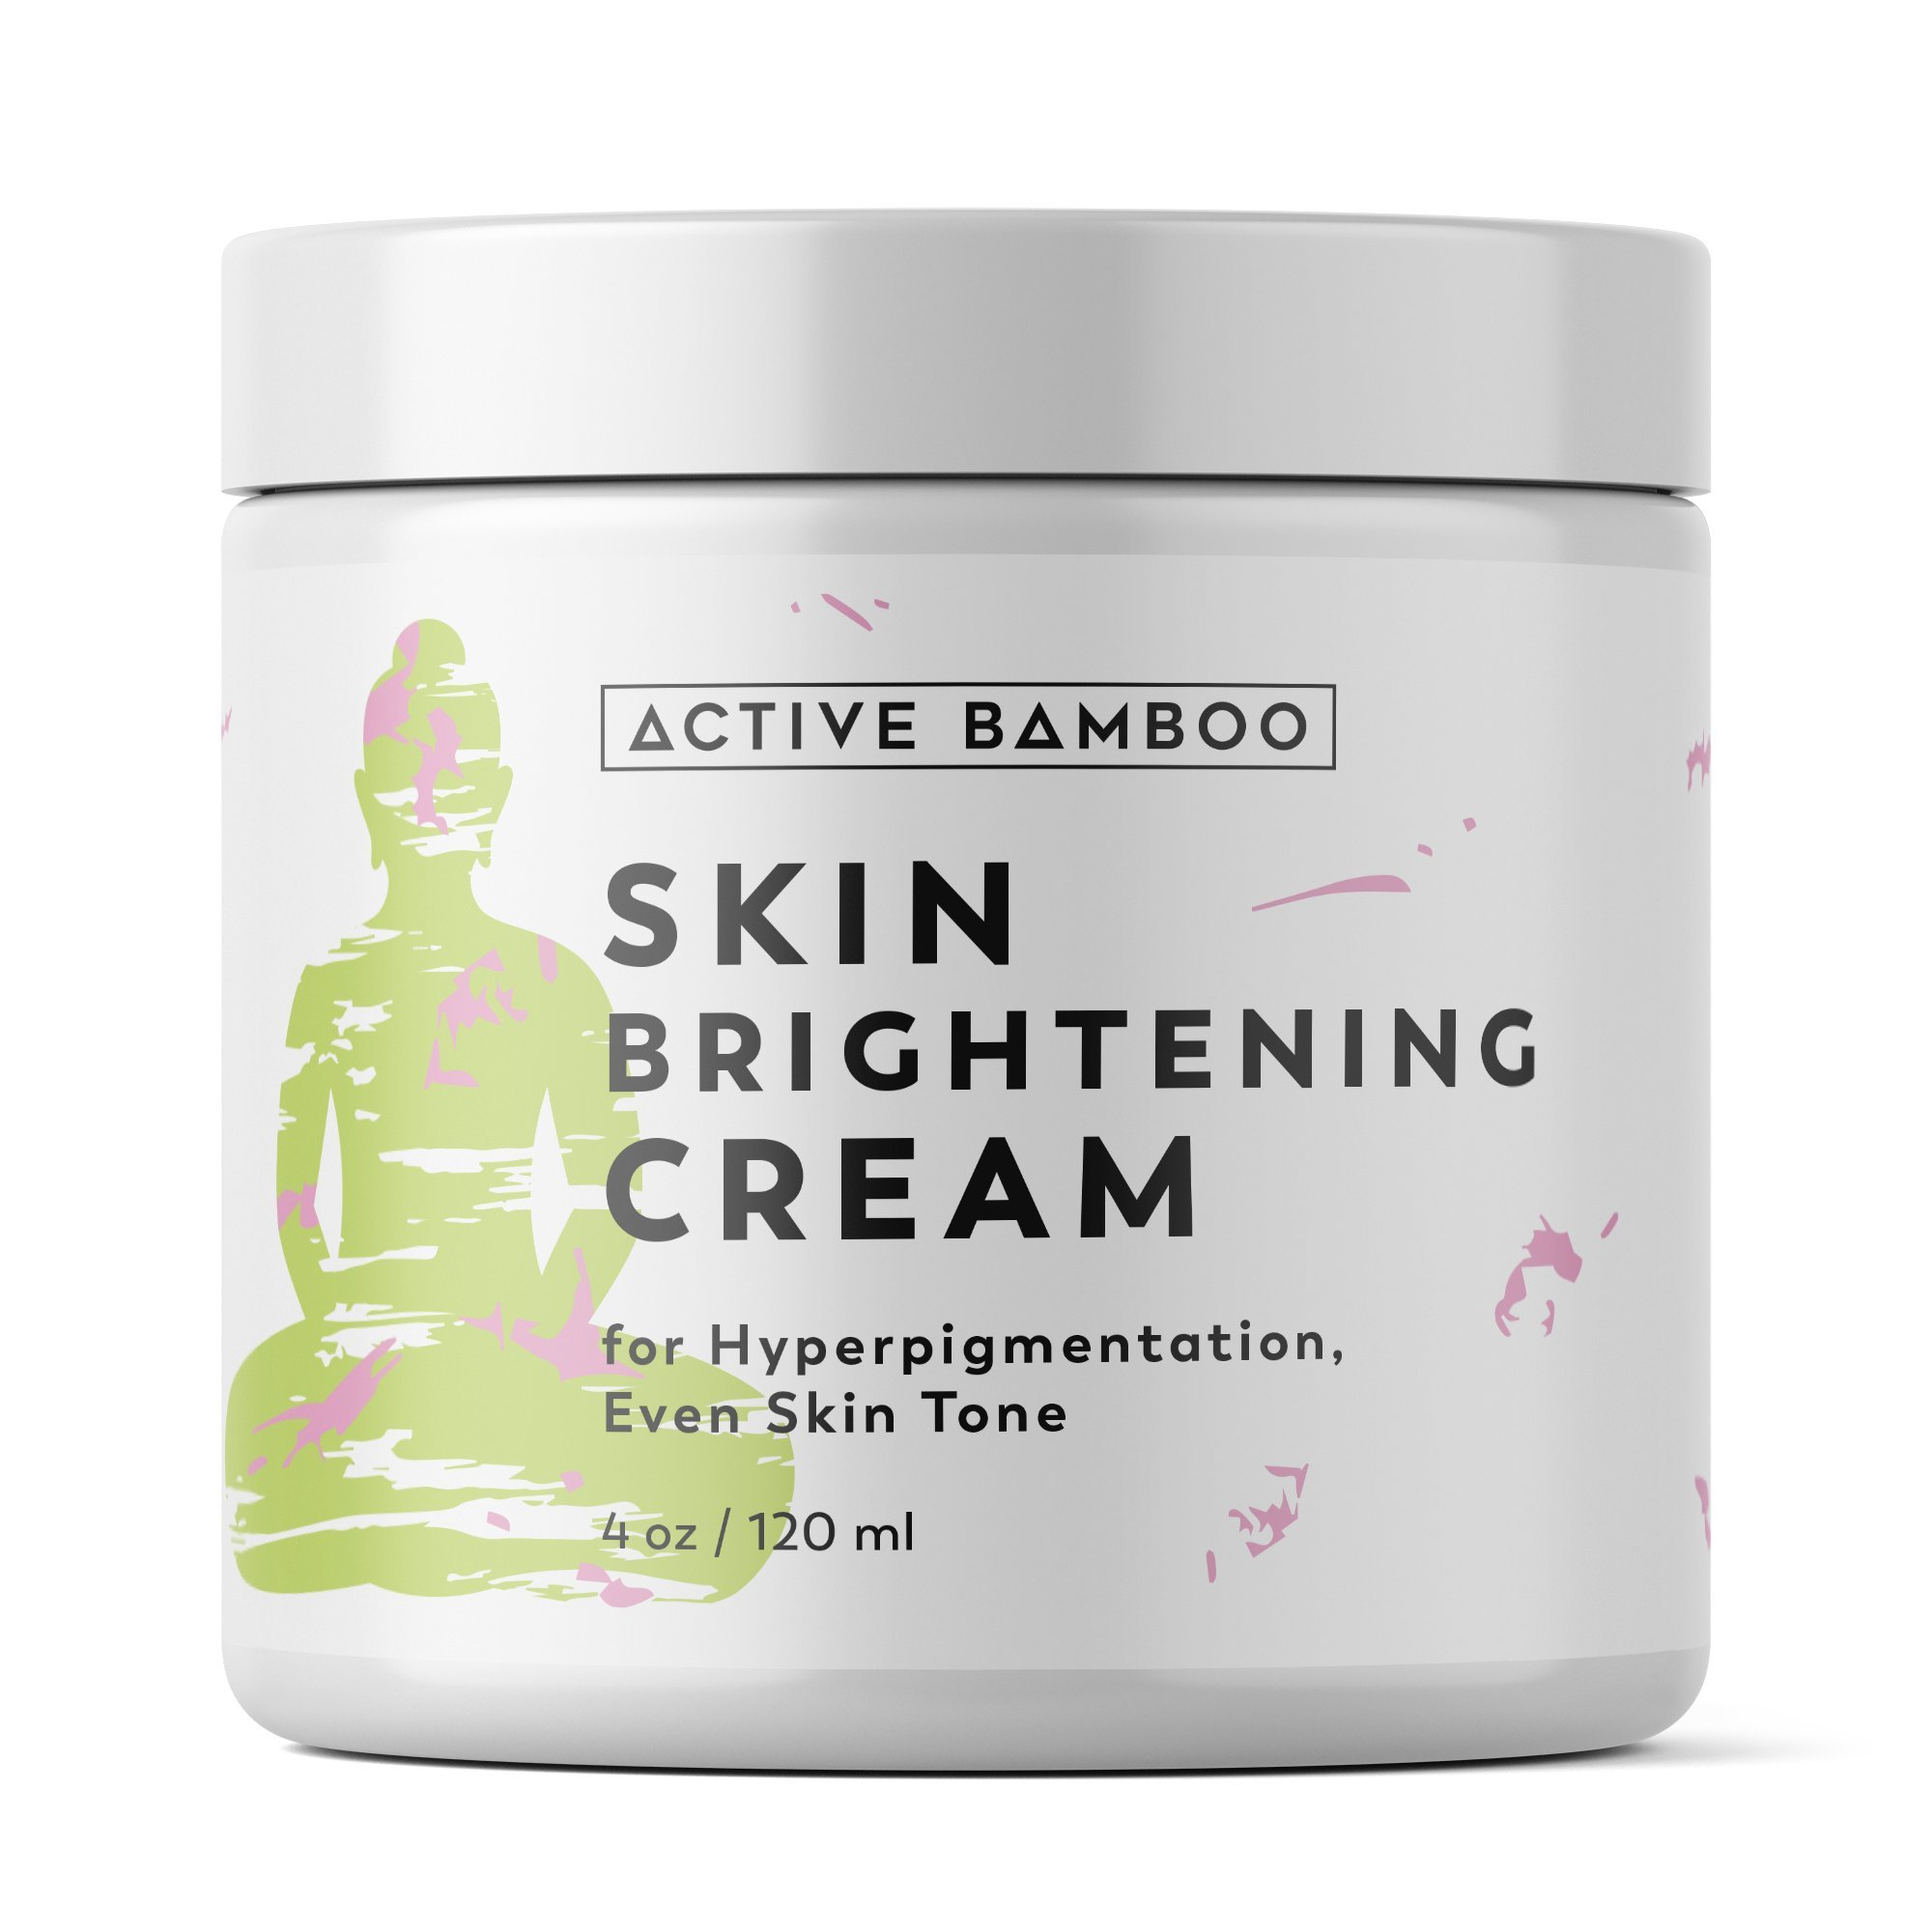 Whitening Cream. Anti Aging Skin Lightening Cream - Dark Spot Corrector Age Spot Remover for Face - Day Night Moisturizing Cream 4 OZ